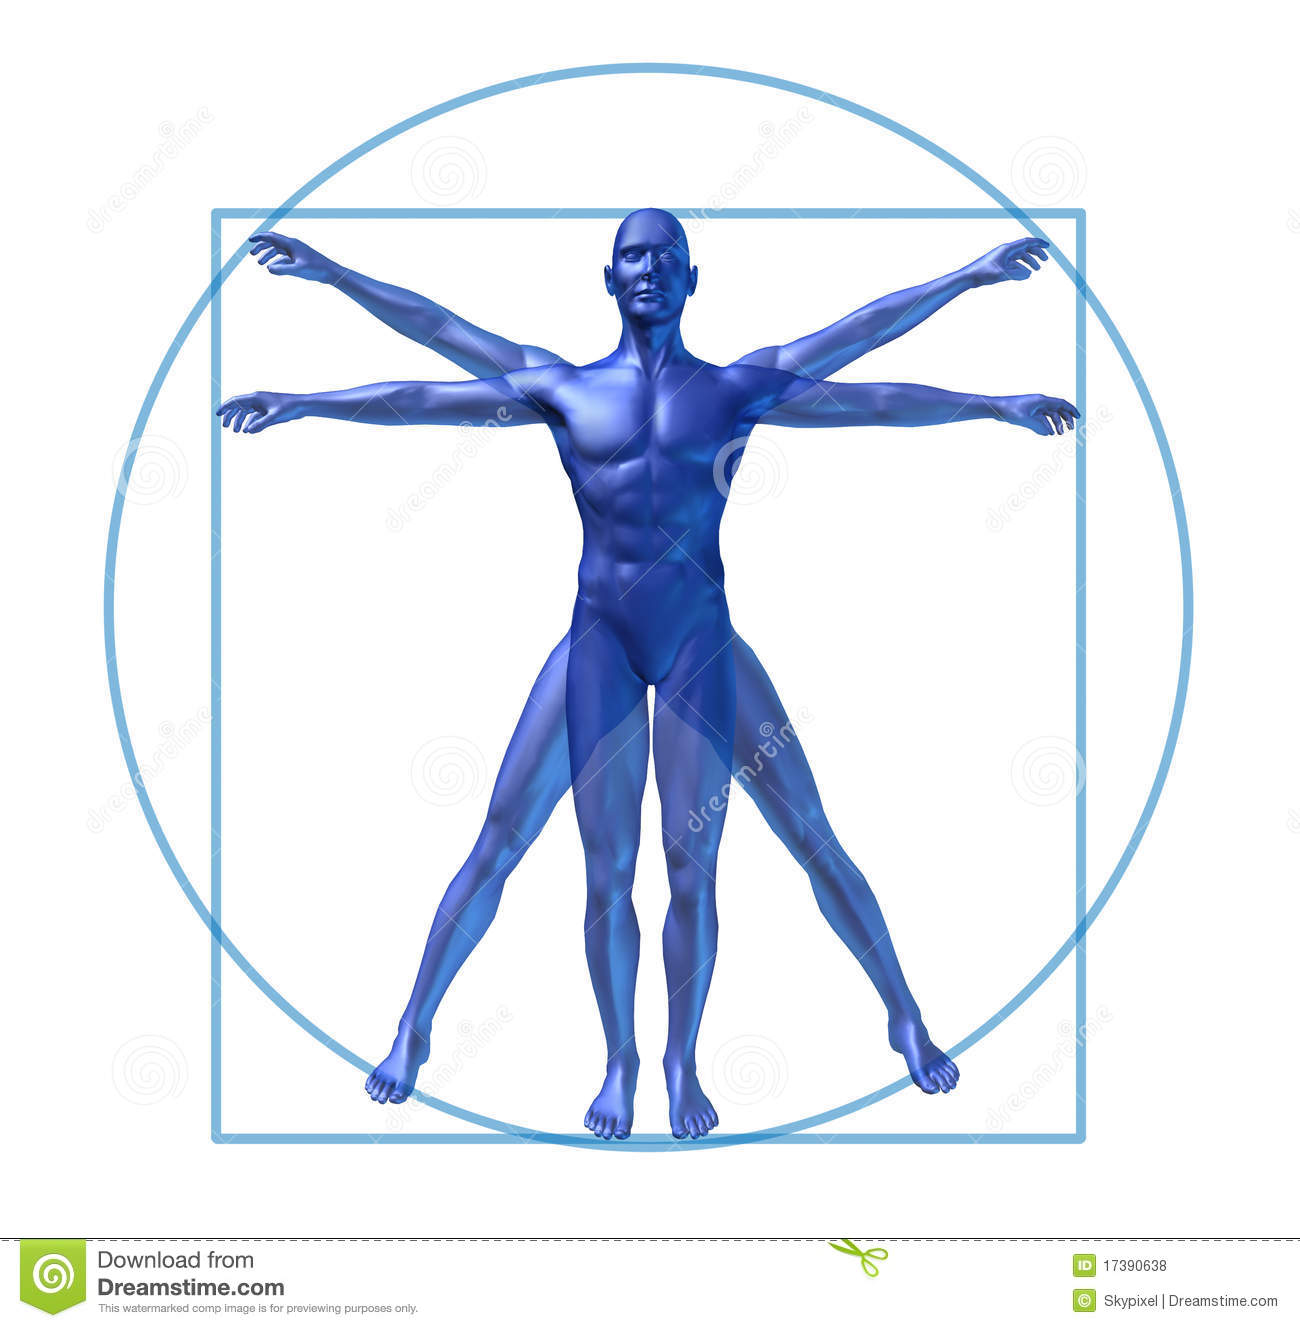 human diagram vitruvian man isolated royalty free stock. Black Bedroom Furniture Sets. Home Design Ideas